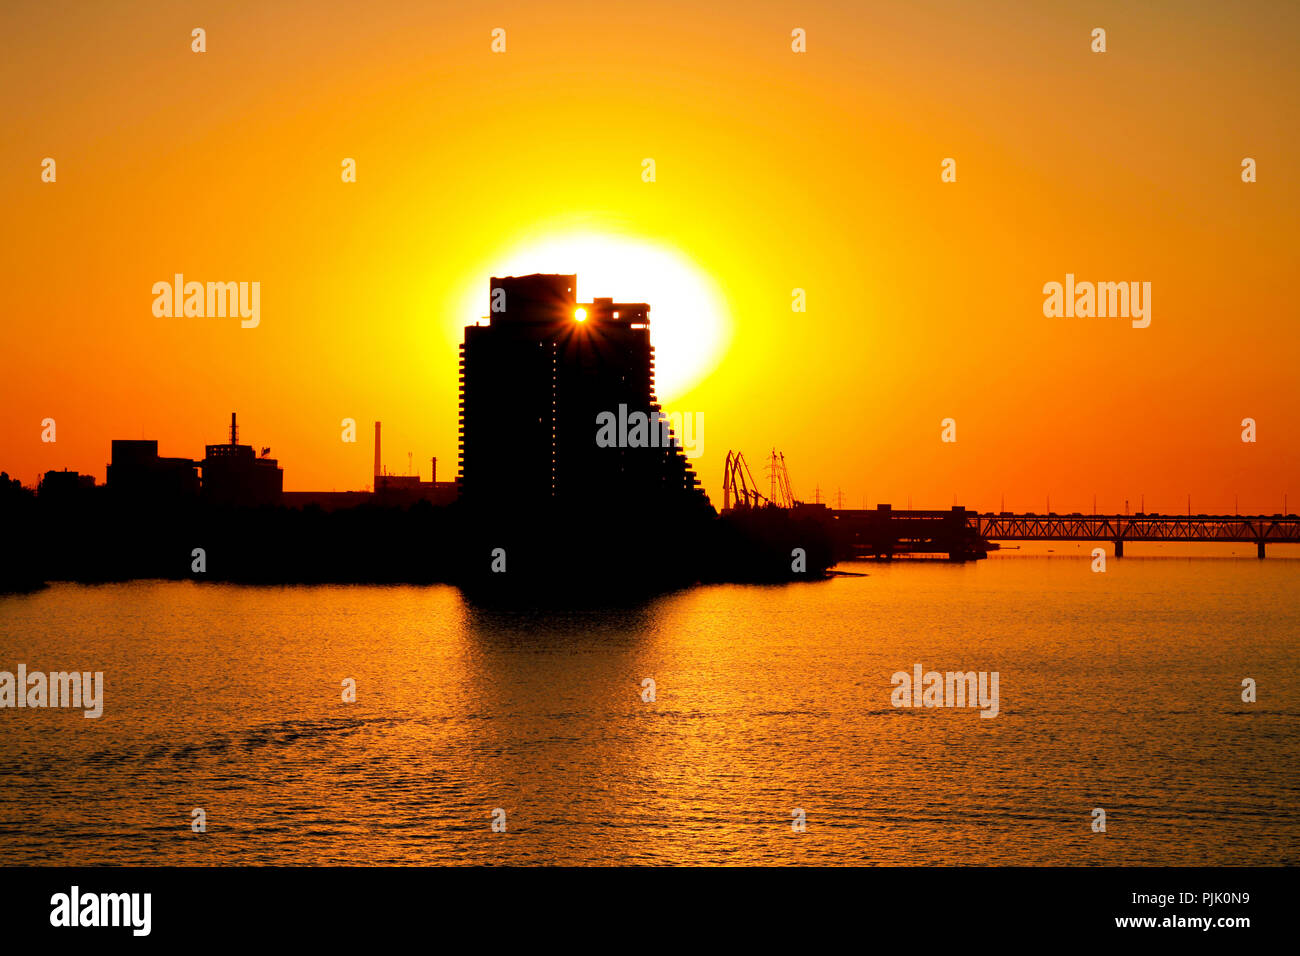 Silhouette of a building and a bridge in Dnepr city at sunset (Dnepropetrovsk, Dnipropetrovsk, Dnipro) Ukraine1111 - Stock Image